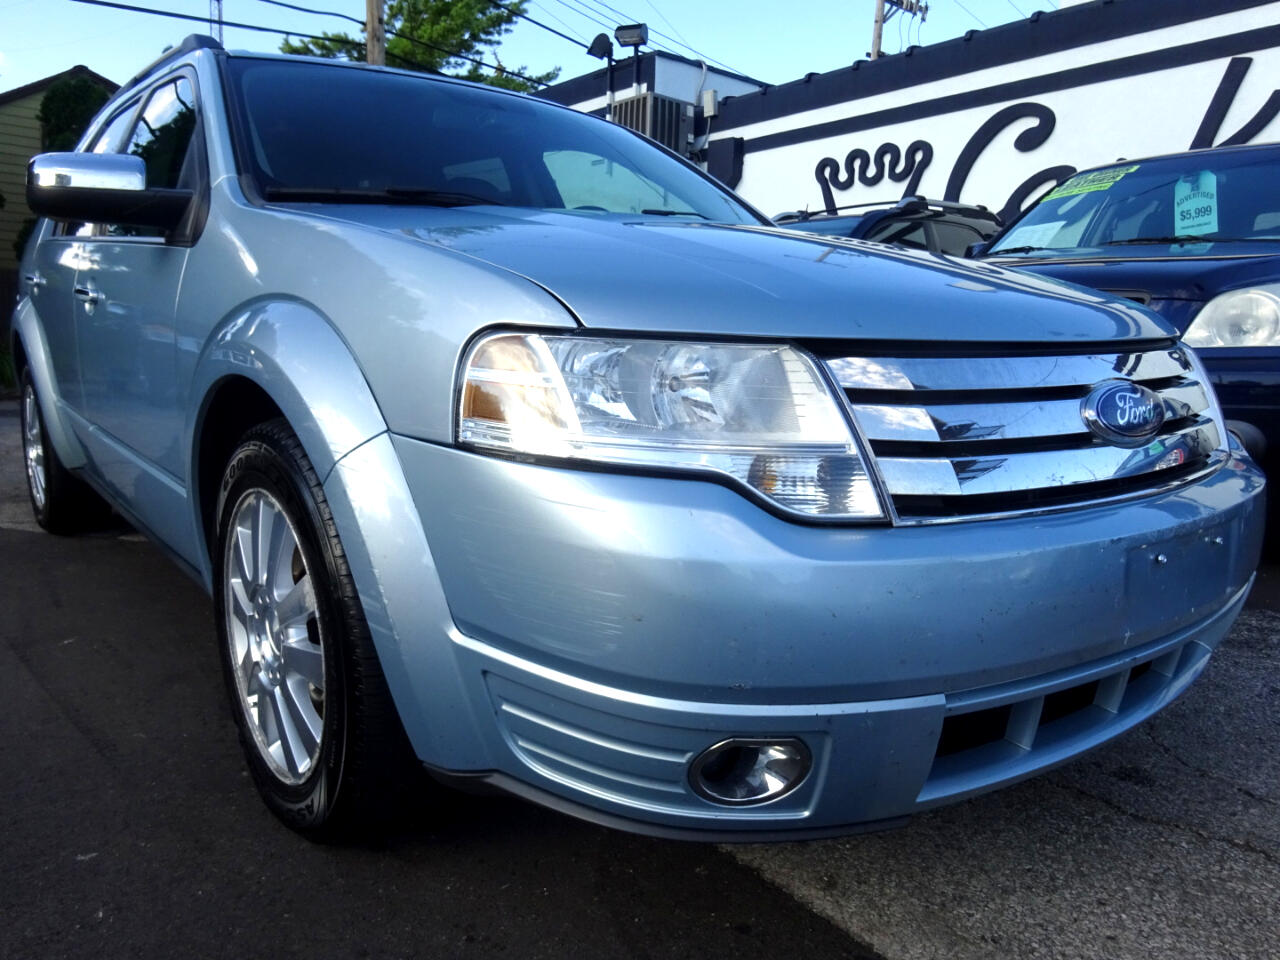 Ford Taurus X 4dr Wgn Limited FWD 2008